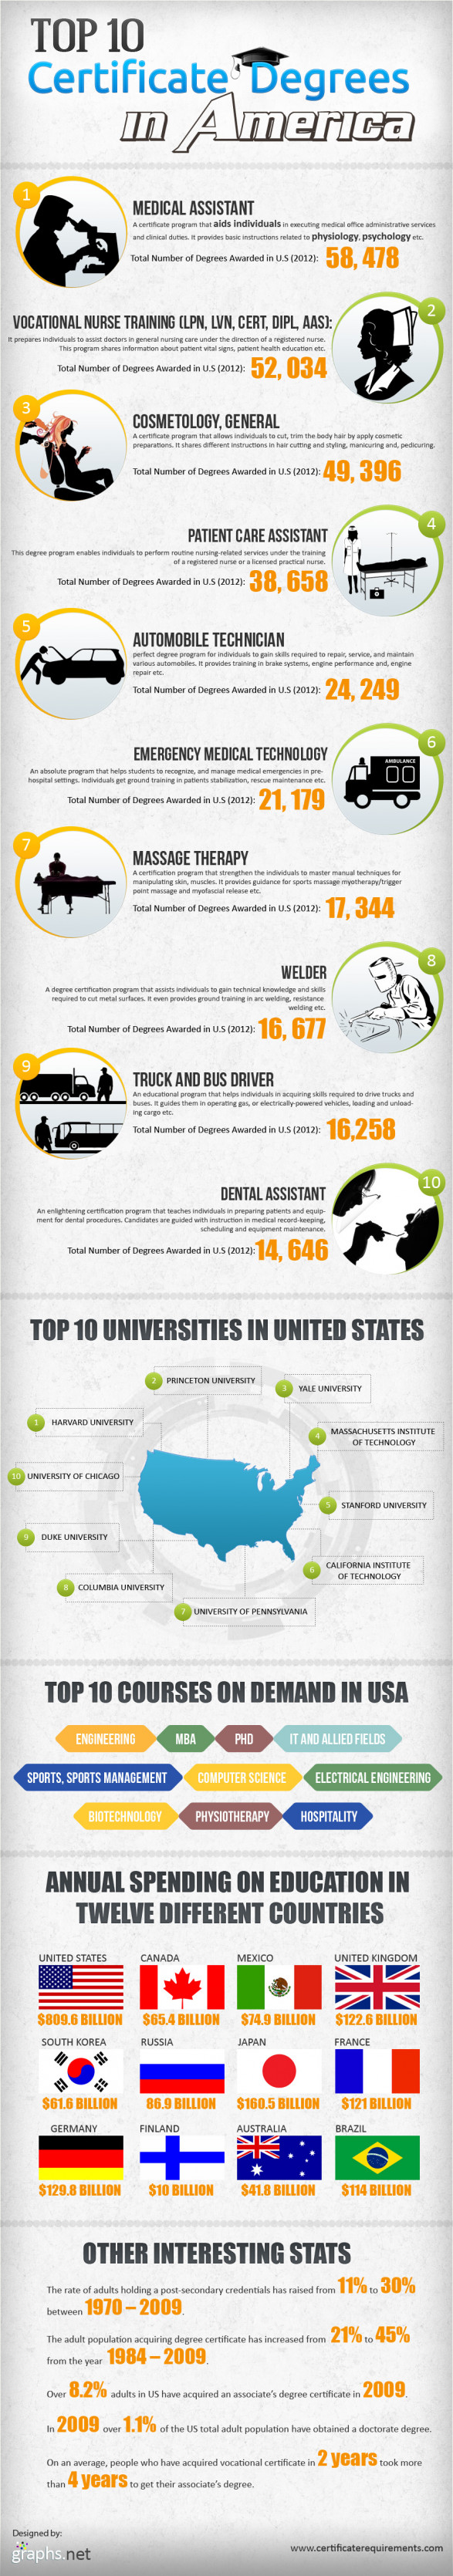 Top 10 Certificate Degrees in America